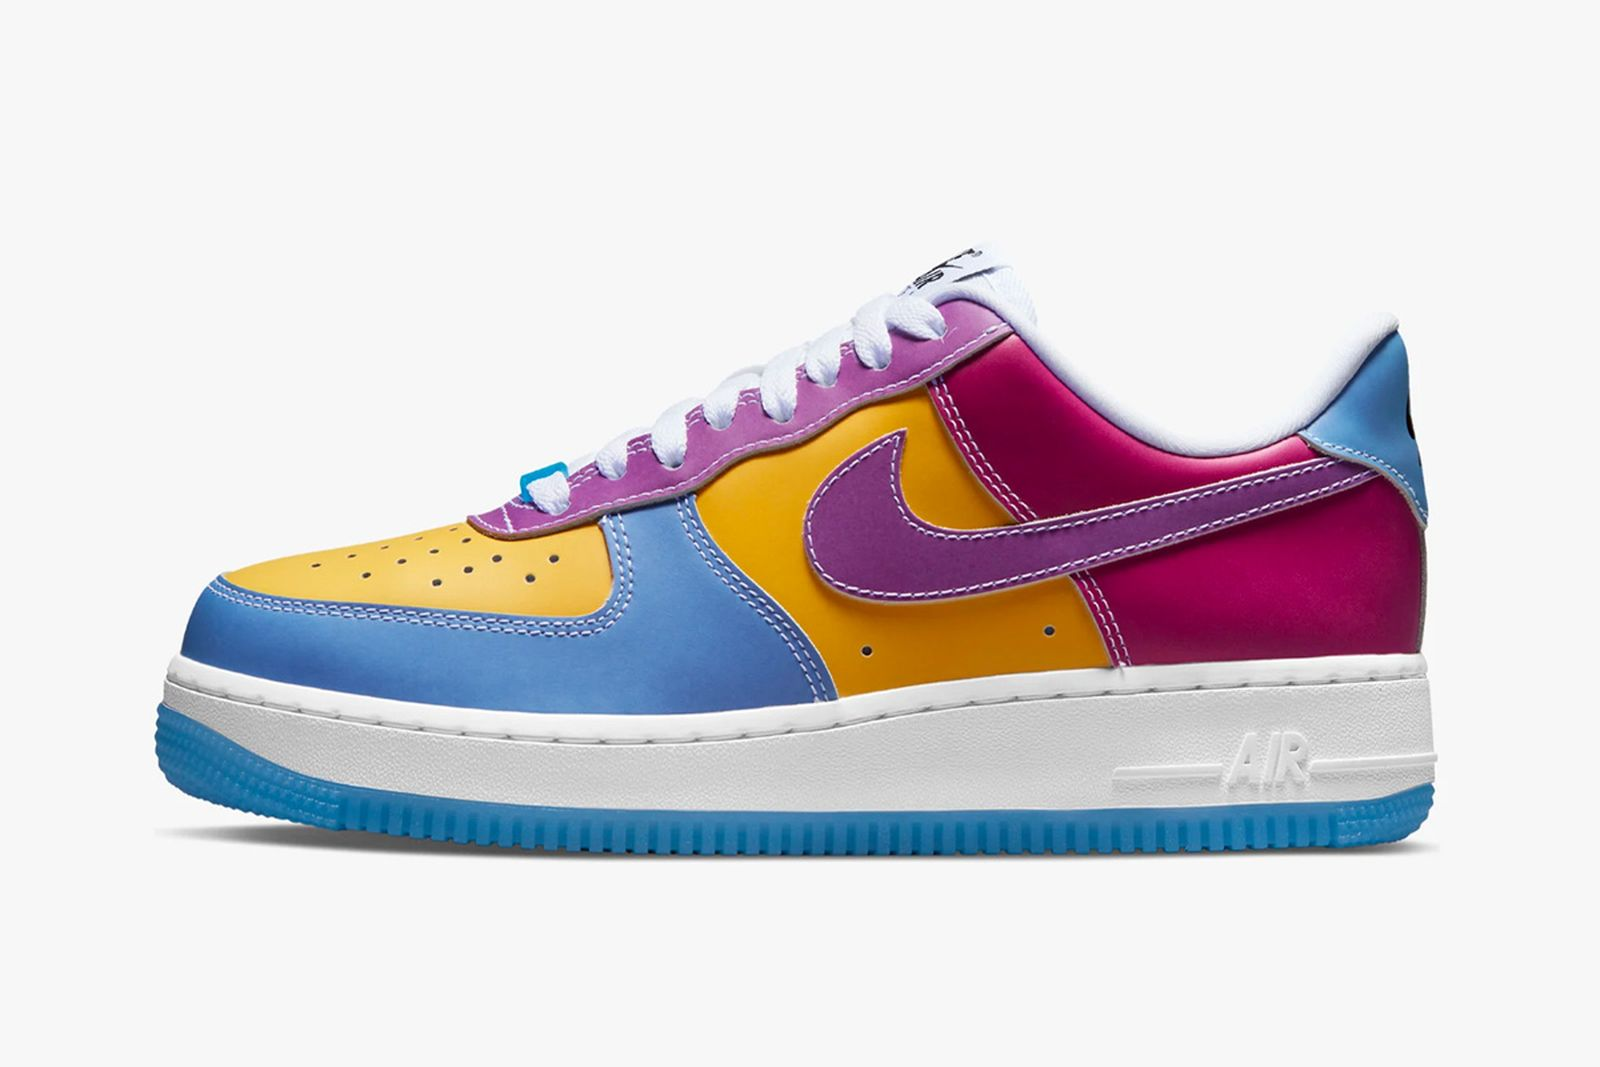 nike-air-force-1-air-force-1-07-lx-release-date-info-price-05